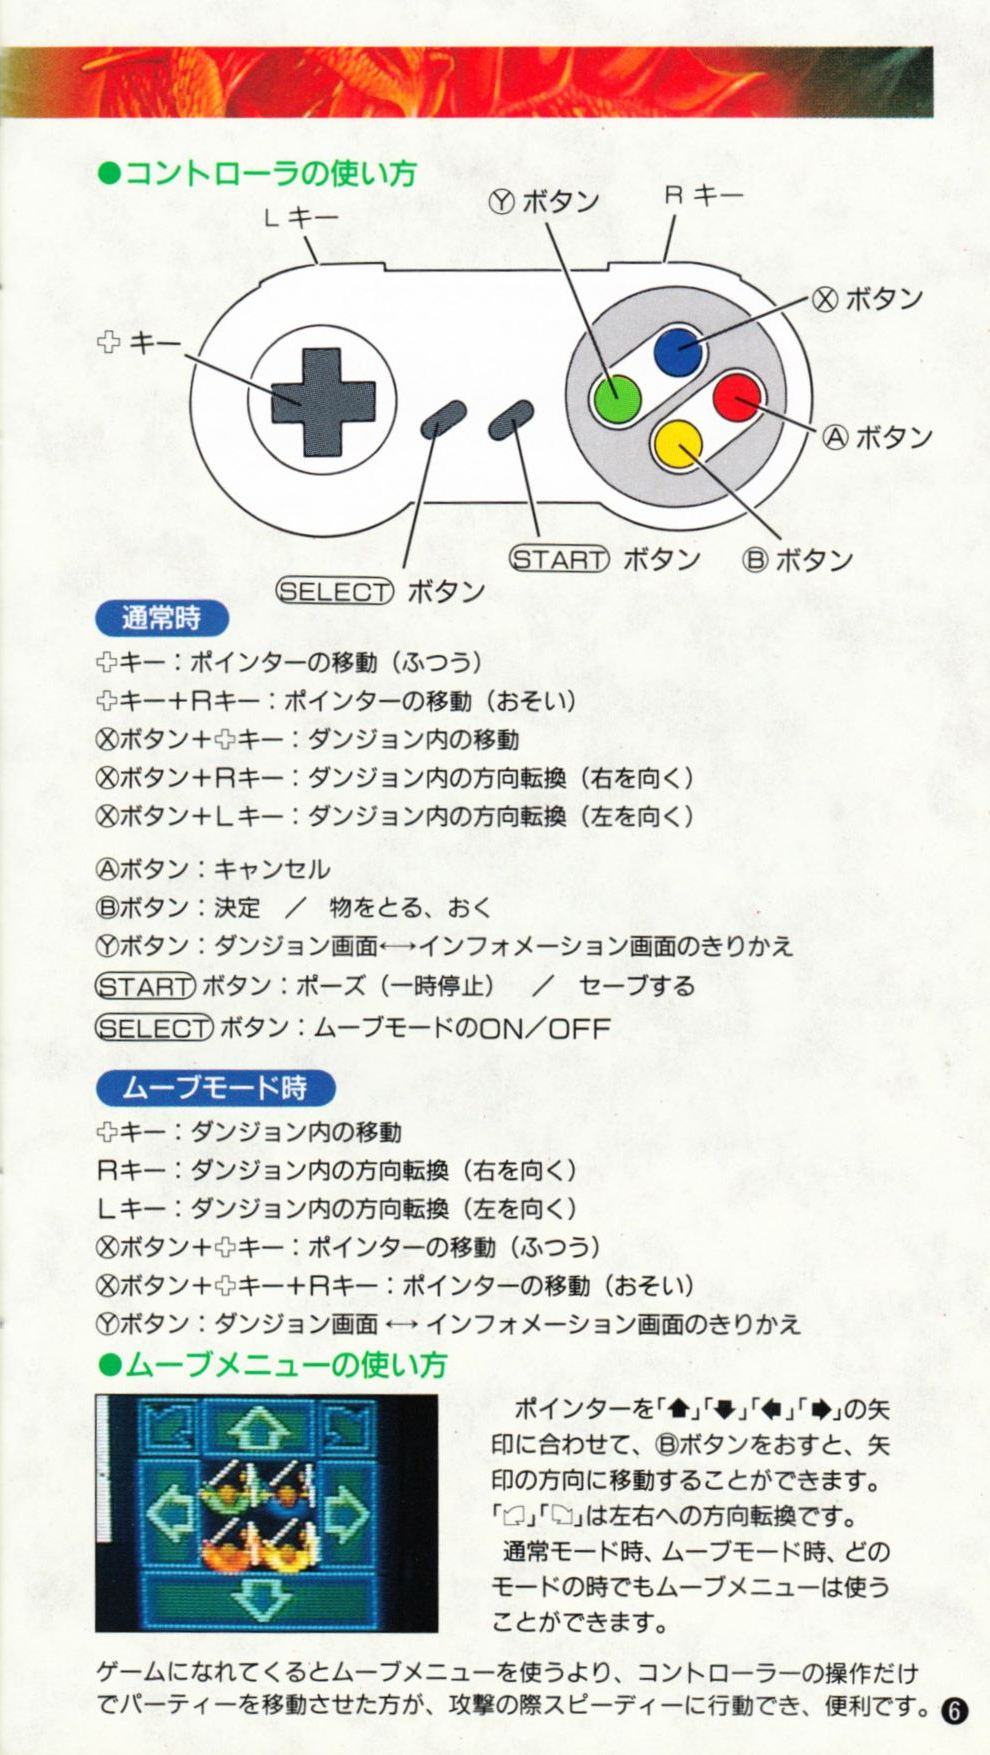 Game - Dungeon Master - JP - Super Famicom - Manual - Page 009 - Scan